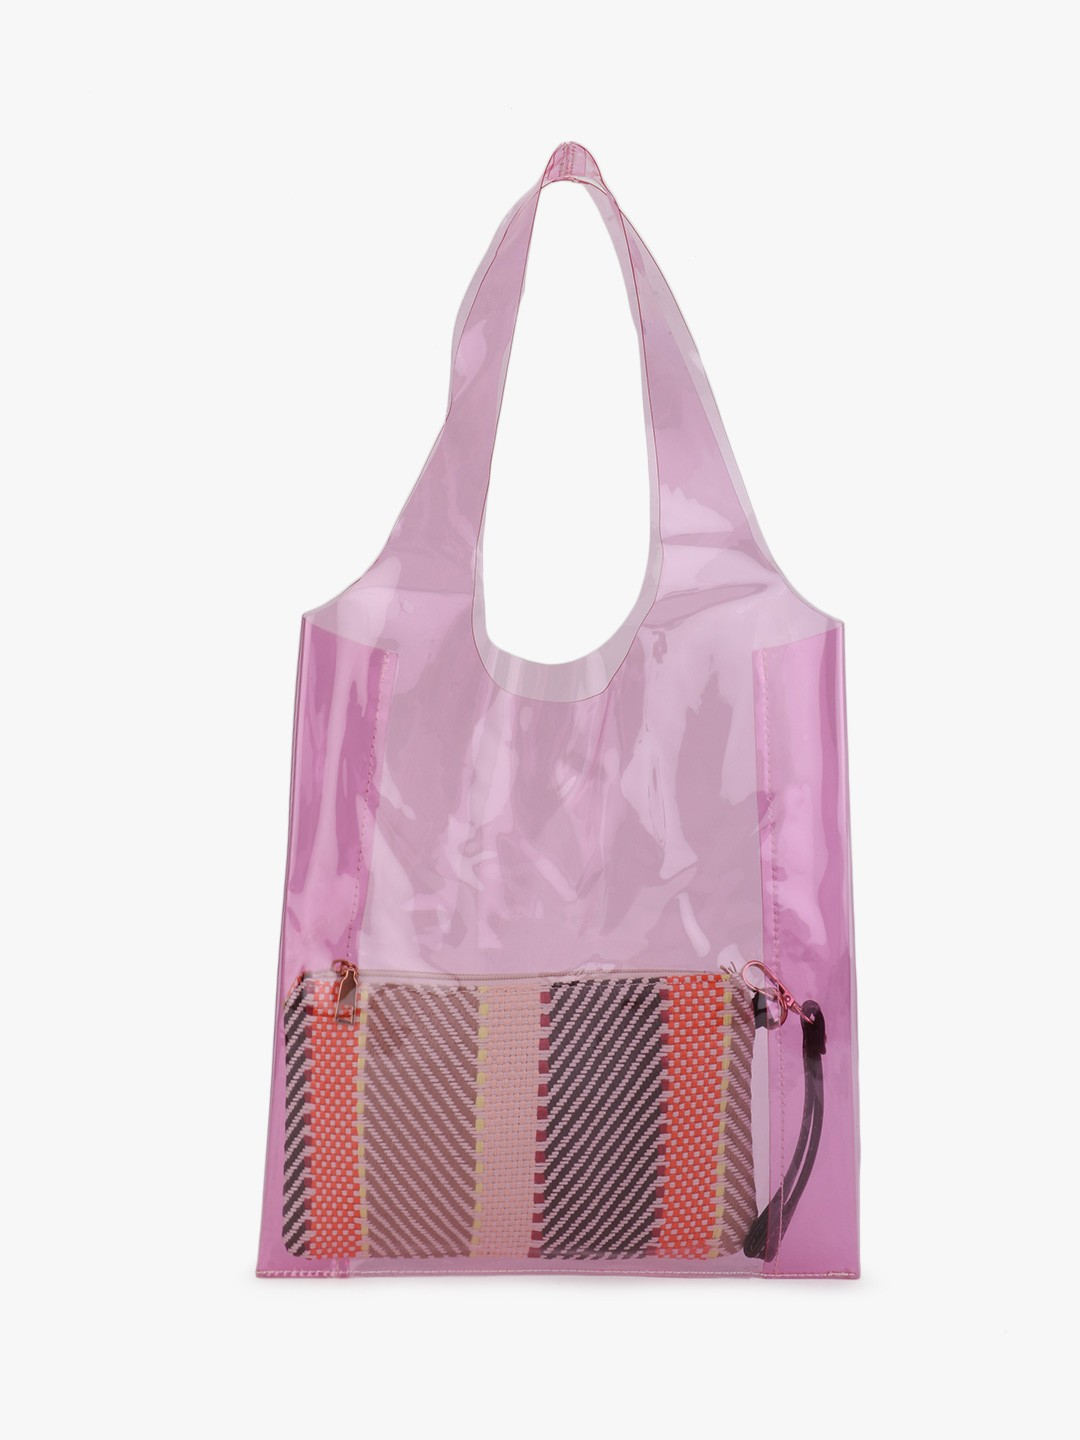 Origami Lily Pink Clear Tote Bag With Pouch 1